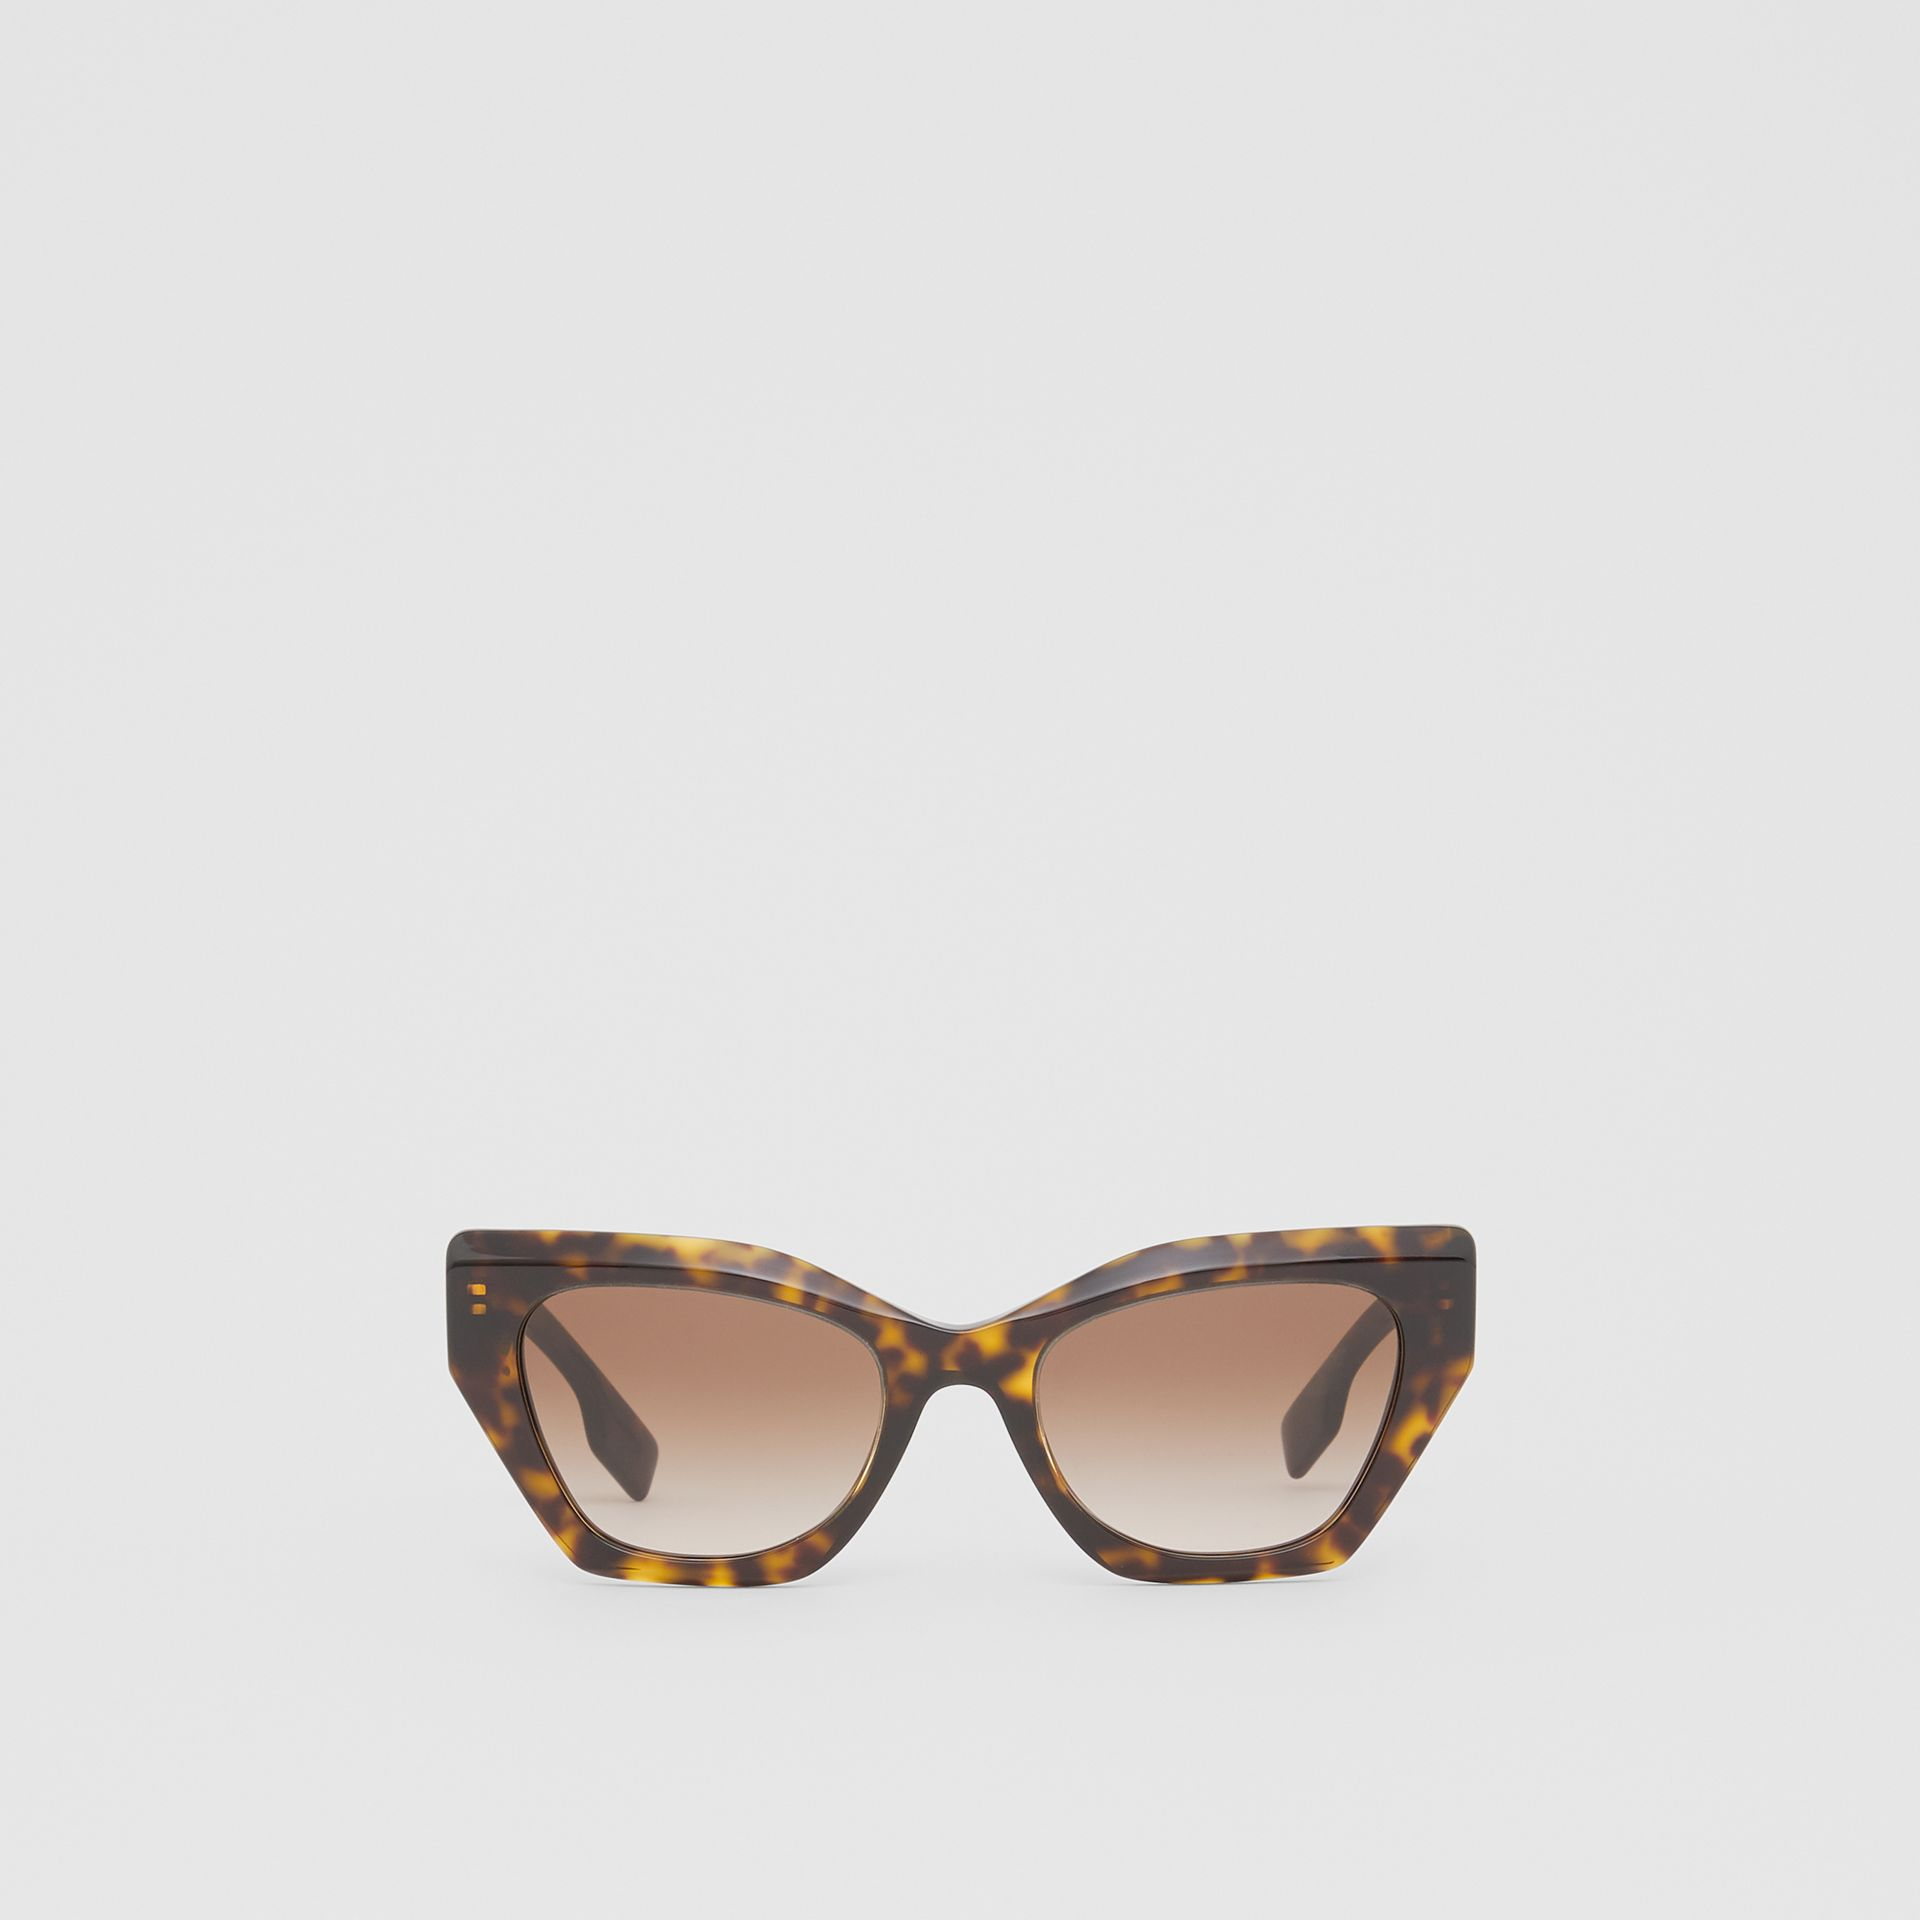 Butterfly Frame Sunglasses in Tortoiseshell - Women | Burberry United Kingdom - gallery image 0